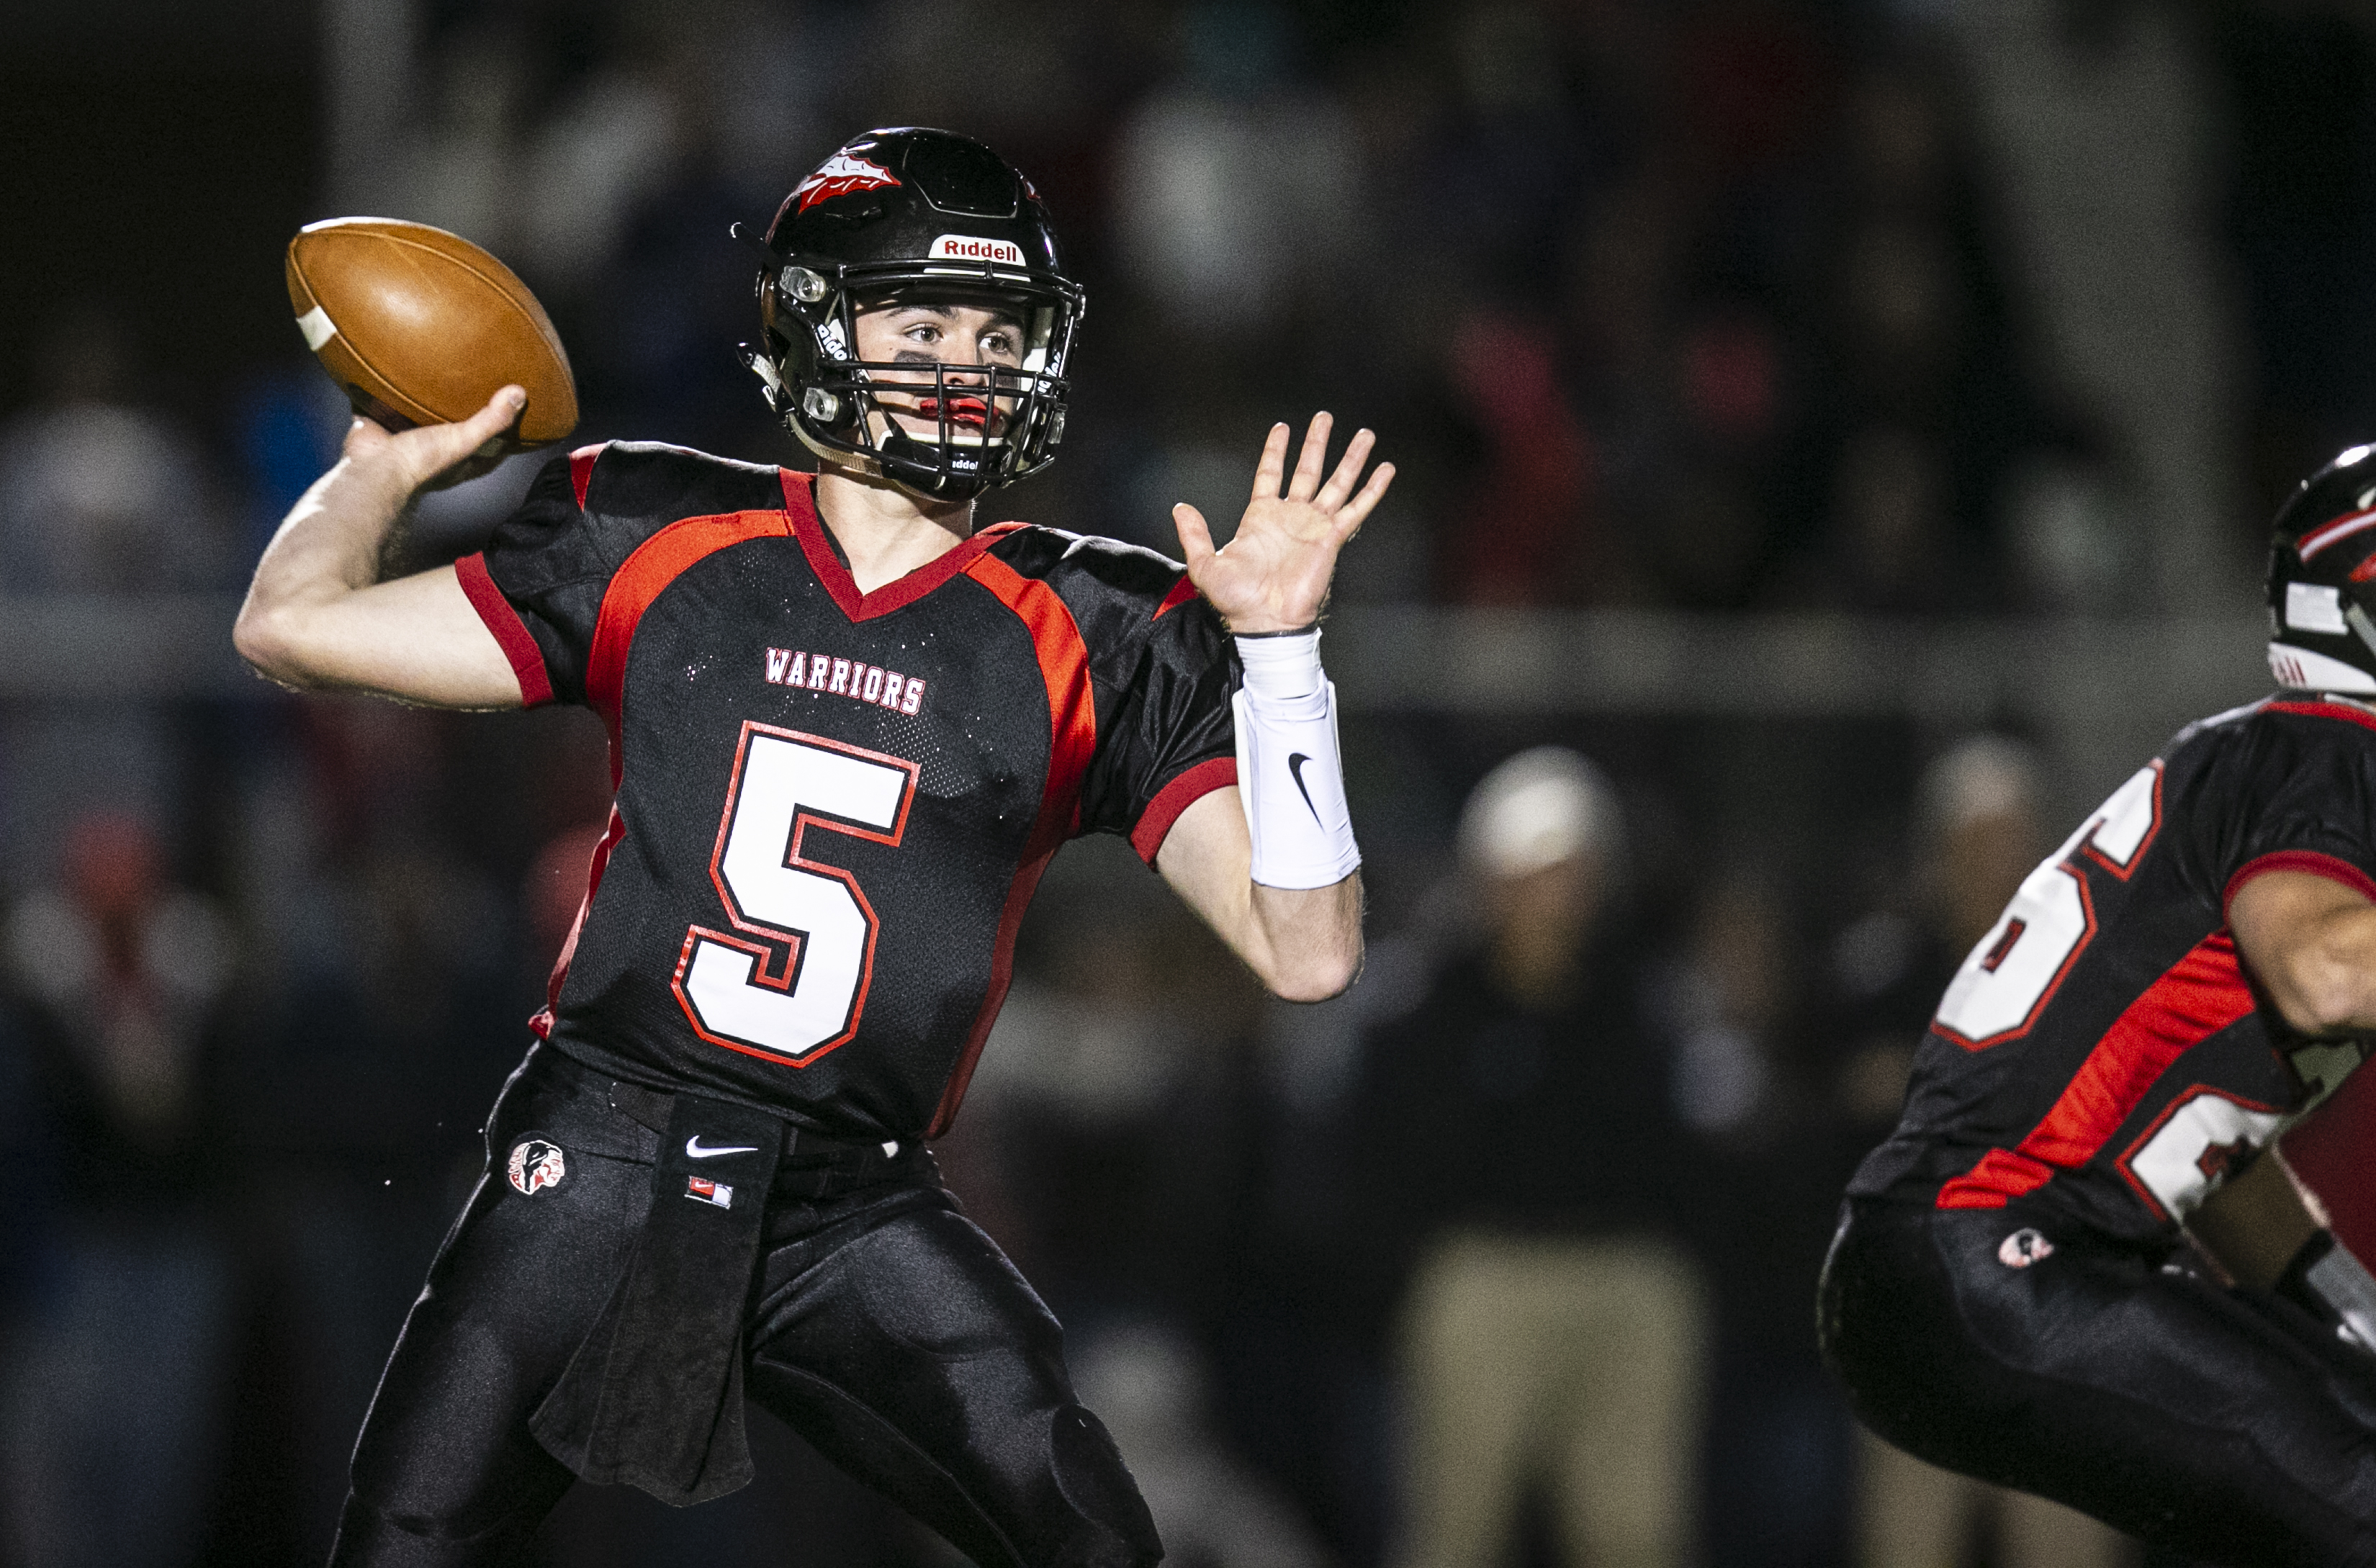 Pennsylvania High School Football Scores Live Updates From Friday S Top Games 10 30 20 Pennlive Com